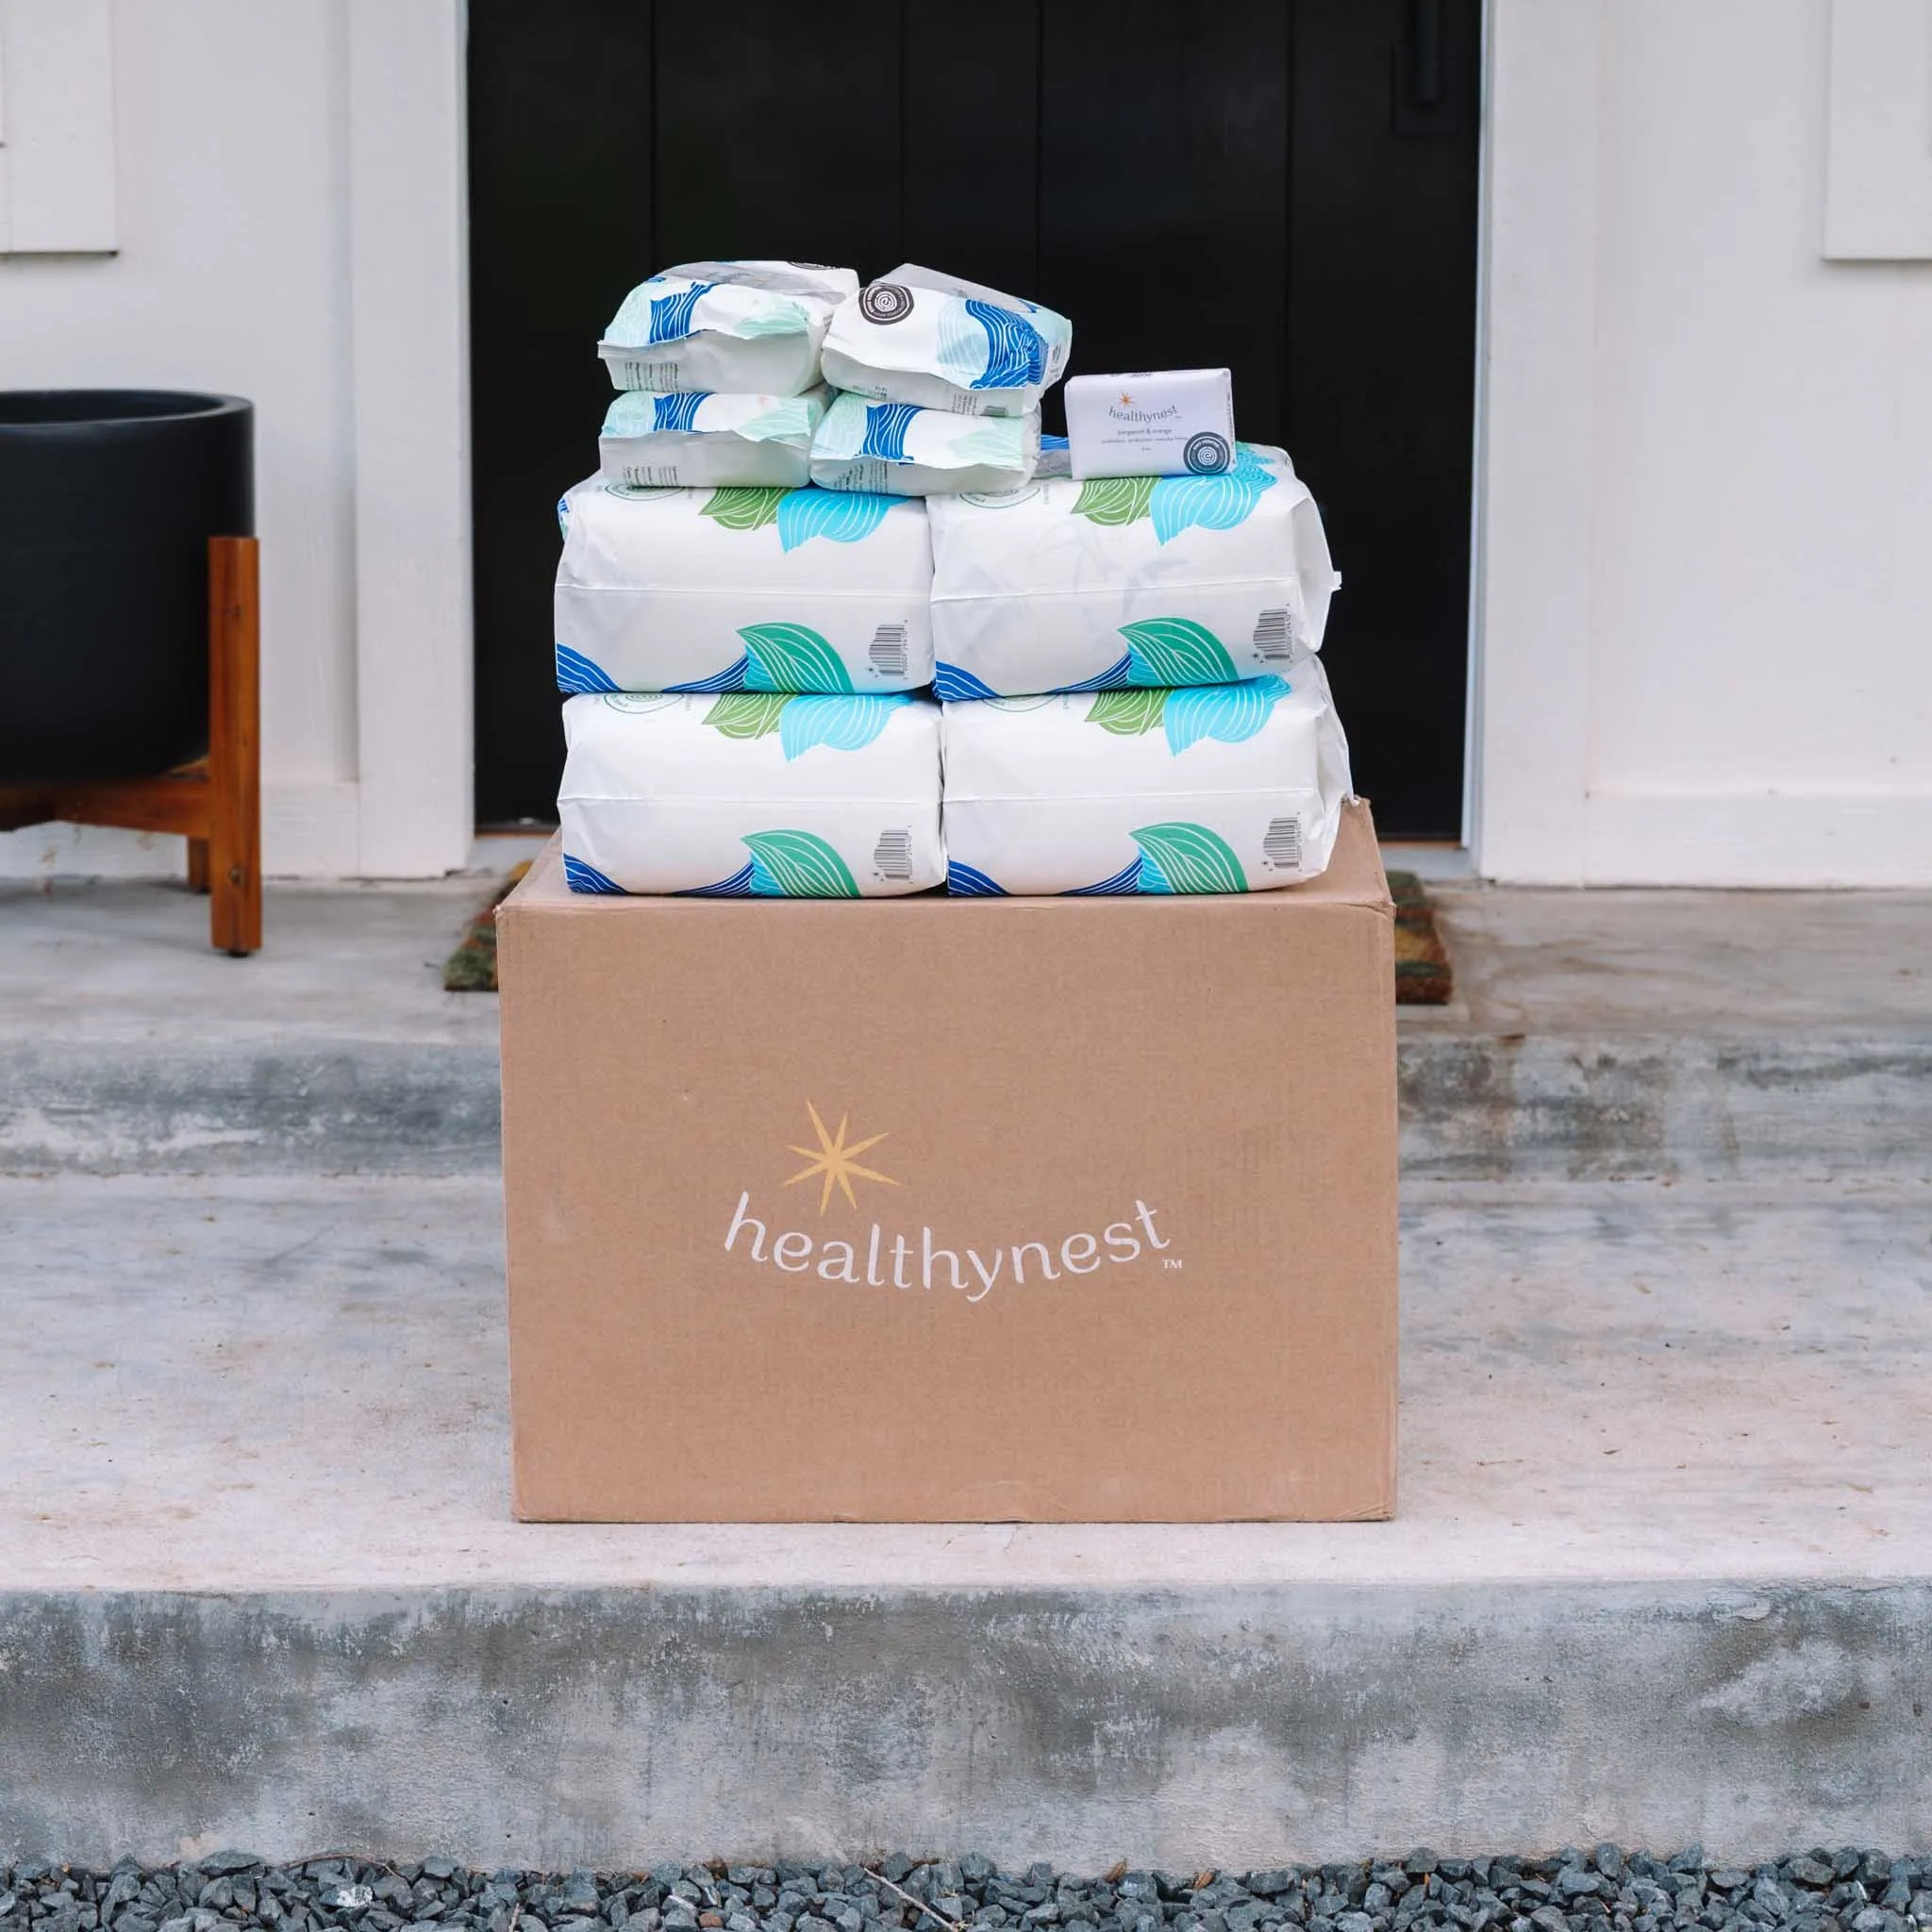 Healthynest coupon code